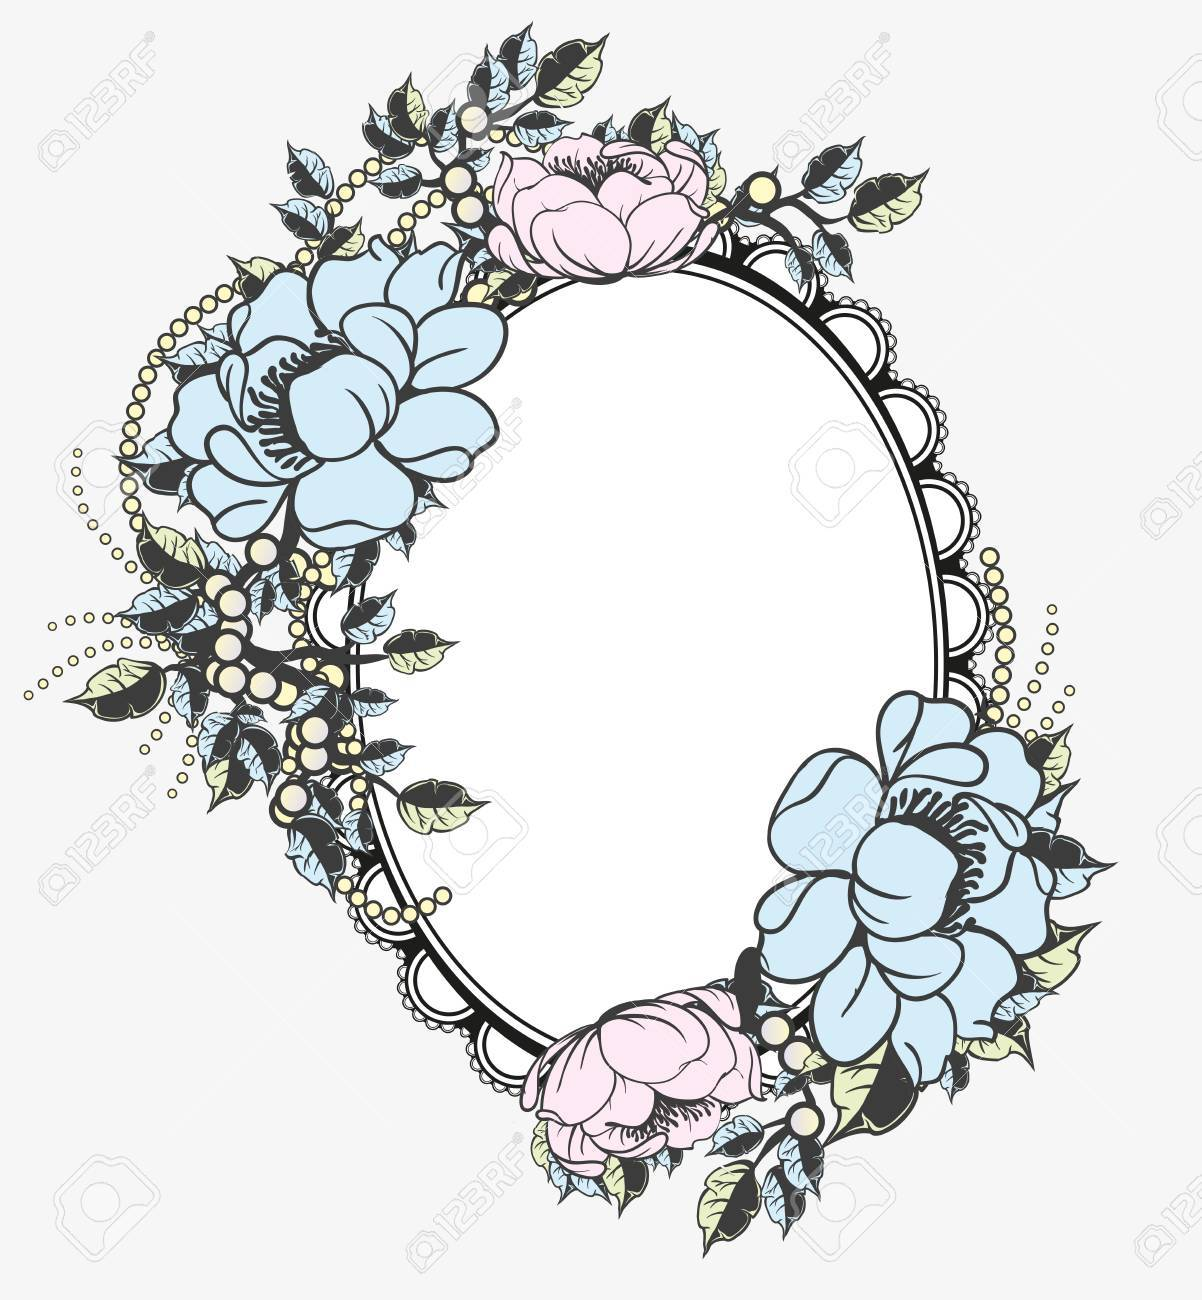 Oval Floral Frame Template Royalty Free Cliparts, Vectors, And Stock ...